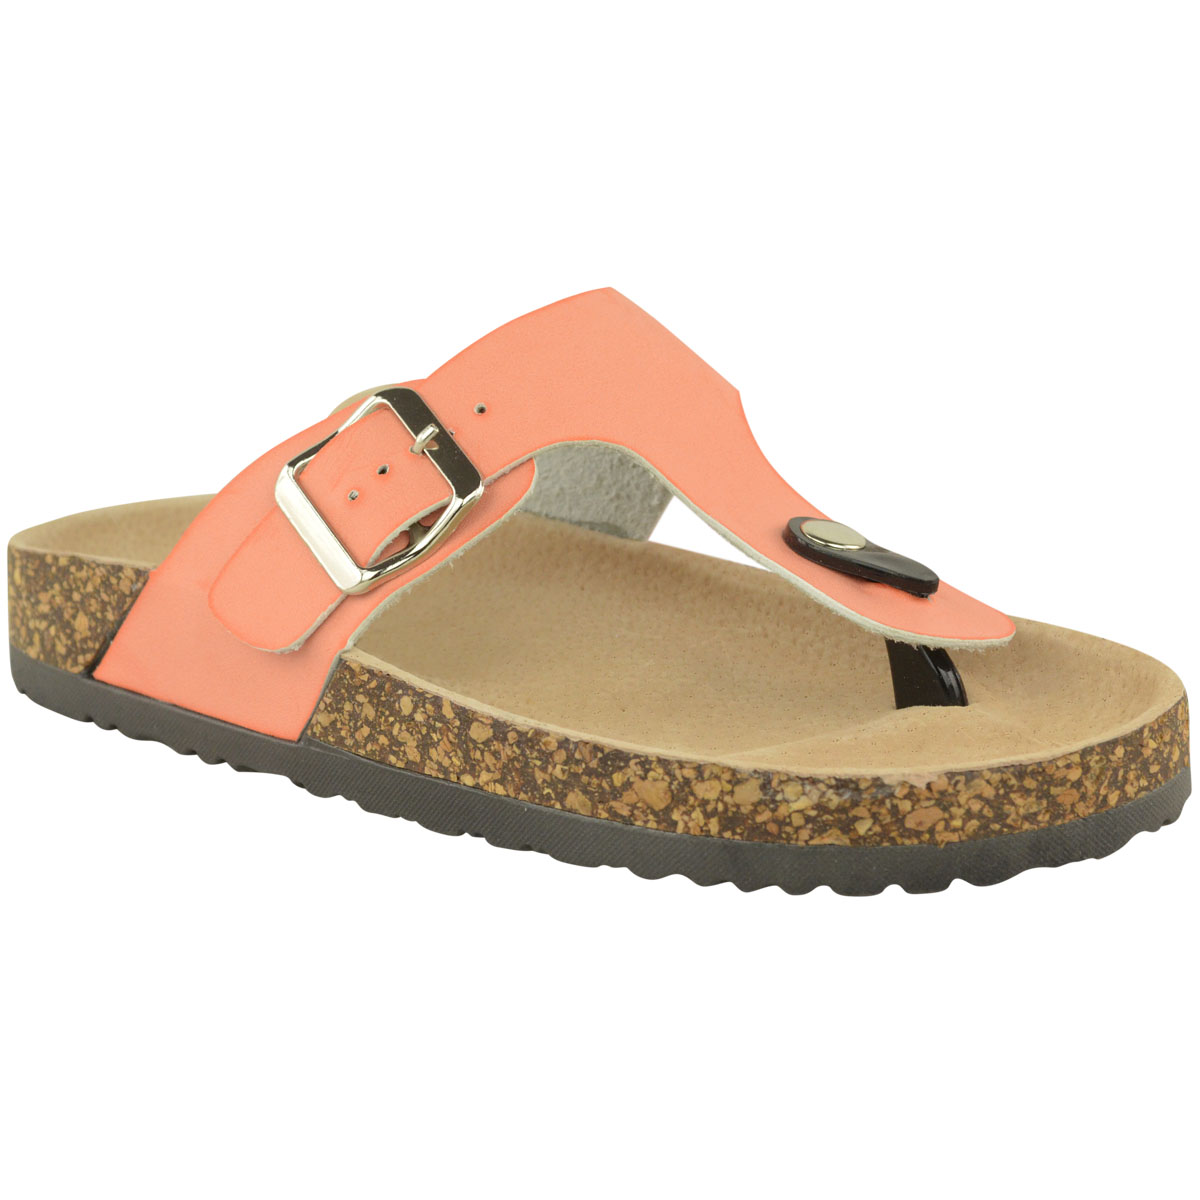 Discover the latest styles of women's flip flop sandals from your favorite brands at Famous Footwear! Find your fit today!